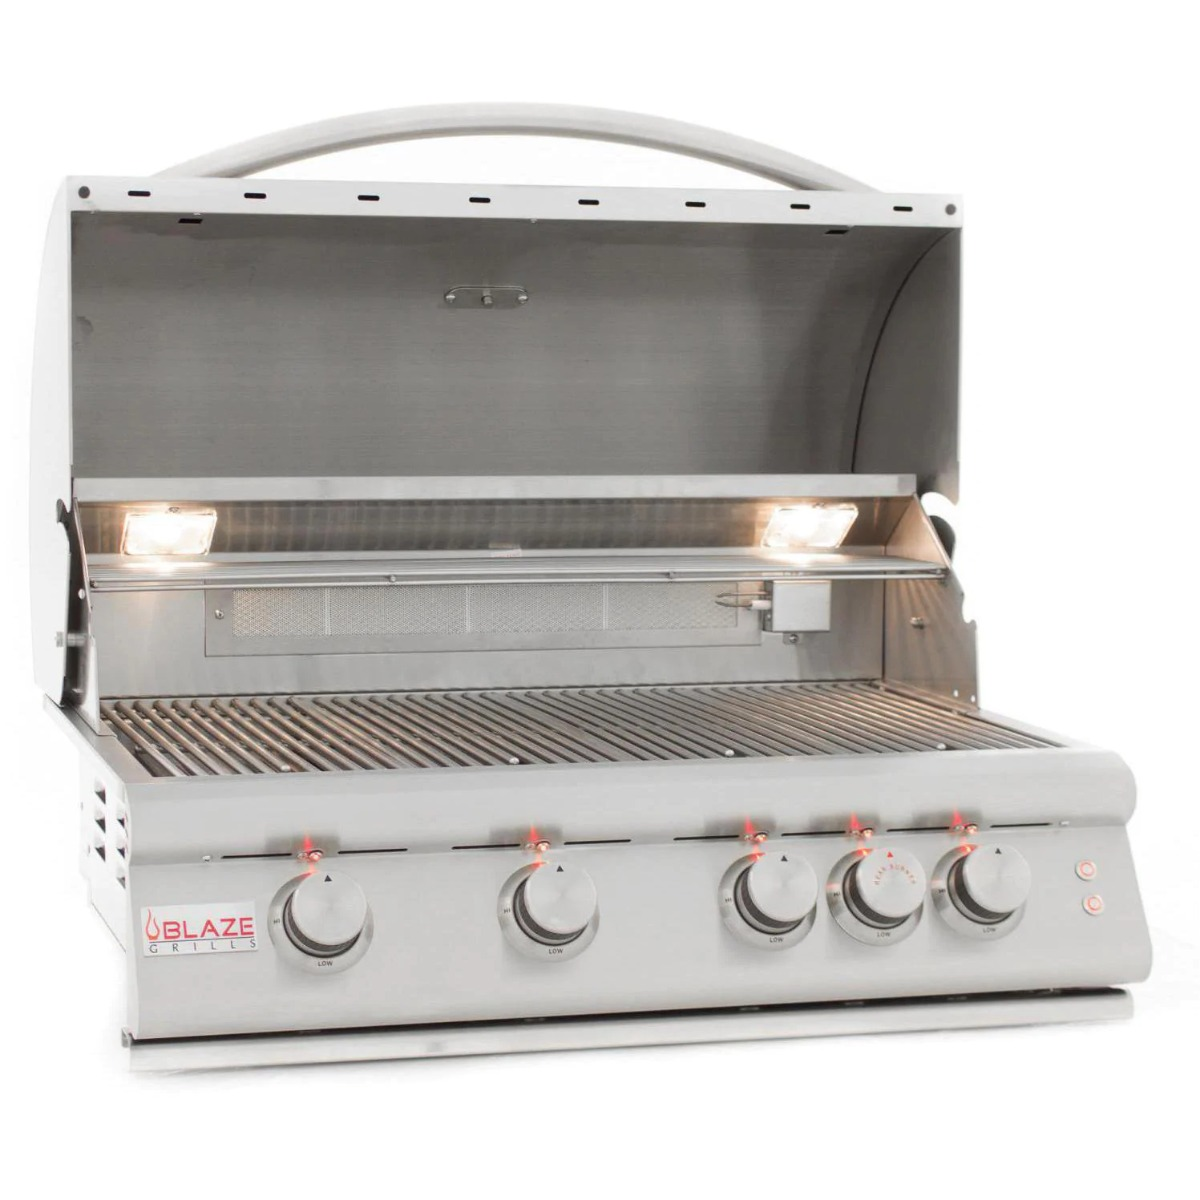 Blaze Premium LTE 32-Inch 4-Burner Built-In Natural Gas Grill with Rotisserie, Rear Infrared Burner & Grill Lights - blz-4lte2-ng-rt